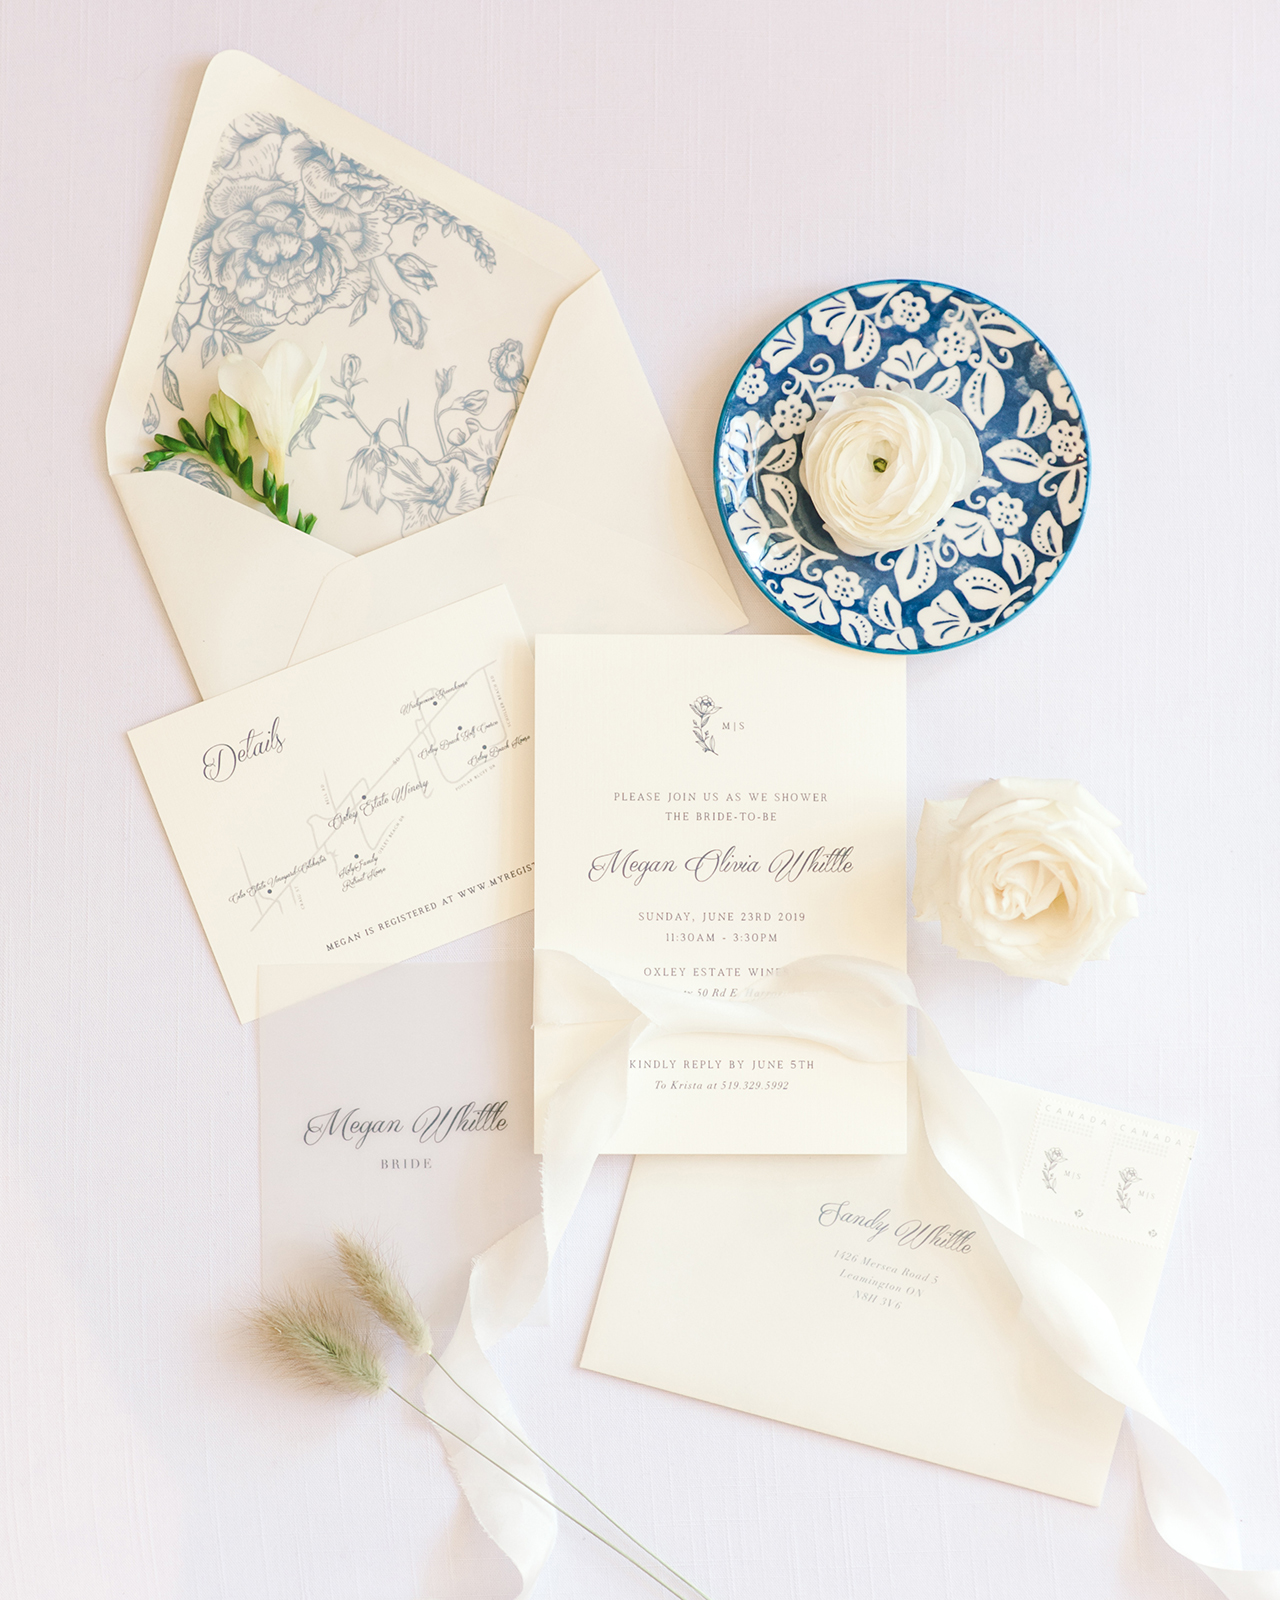 bridal show invitation blue white china pattern